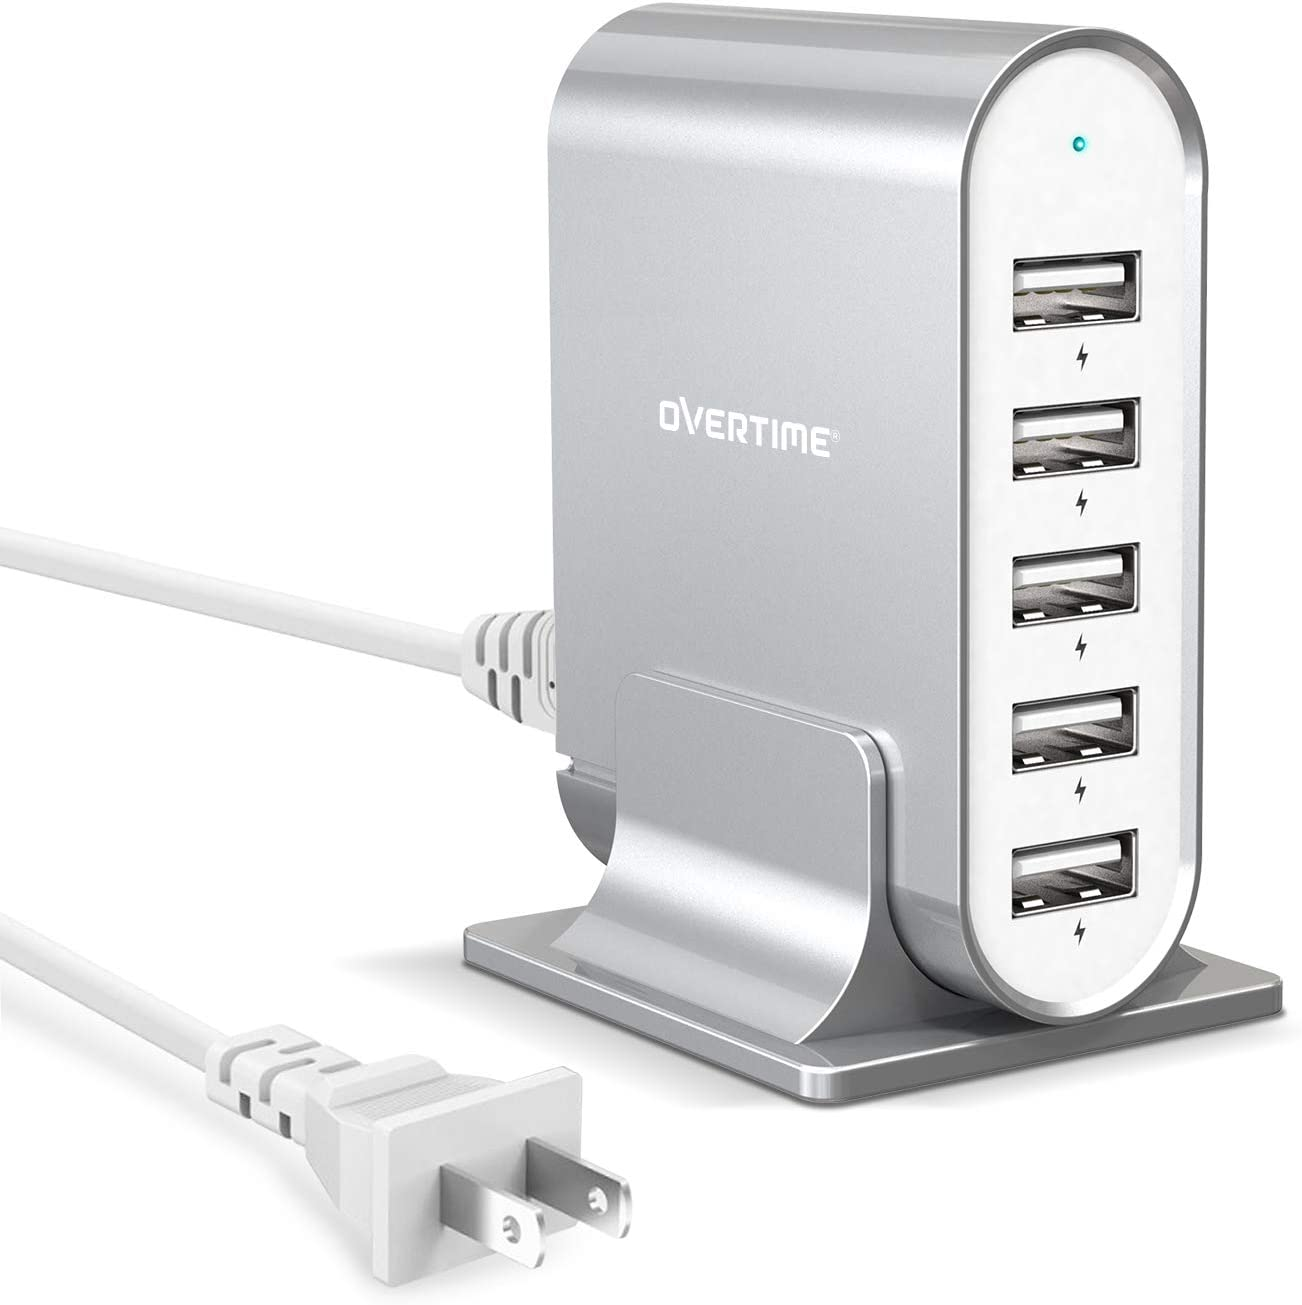 Multiple USB Charger, Overtime 35.5W/7.1A 5-Port Desktop Charger Charging Station Multi Port Fast Wall Charger Hub Compatible with iPhone, iPad, Samsung, LG, Nexus, HTC and More - Silver